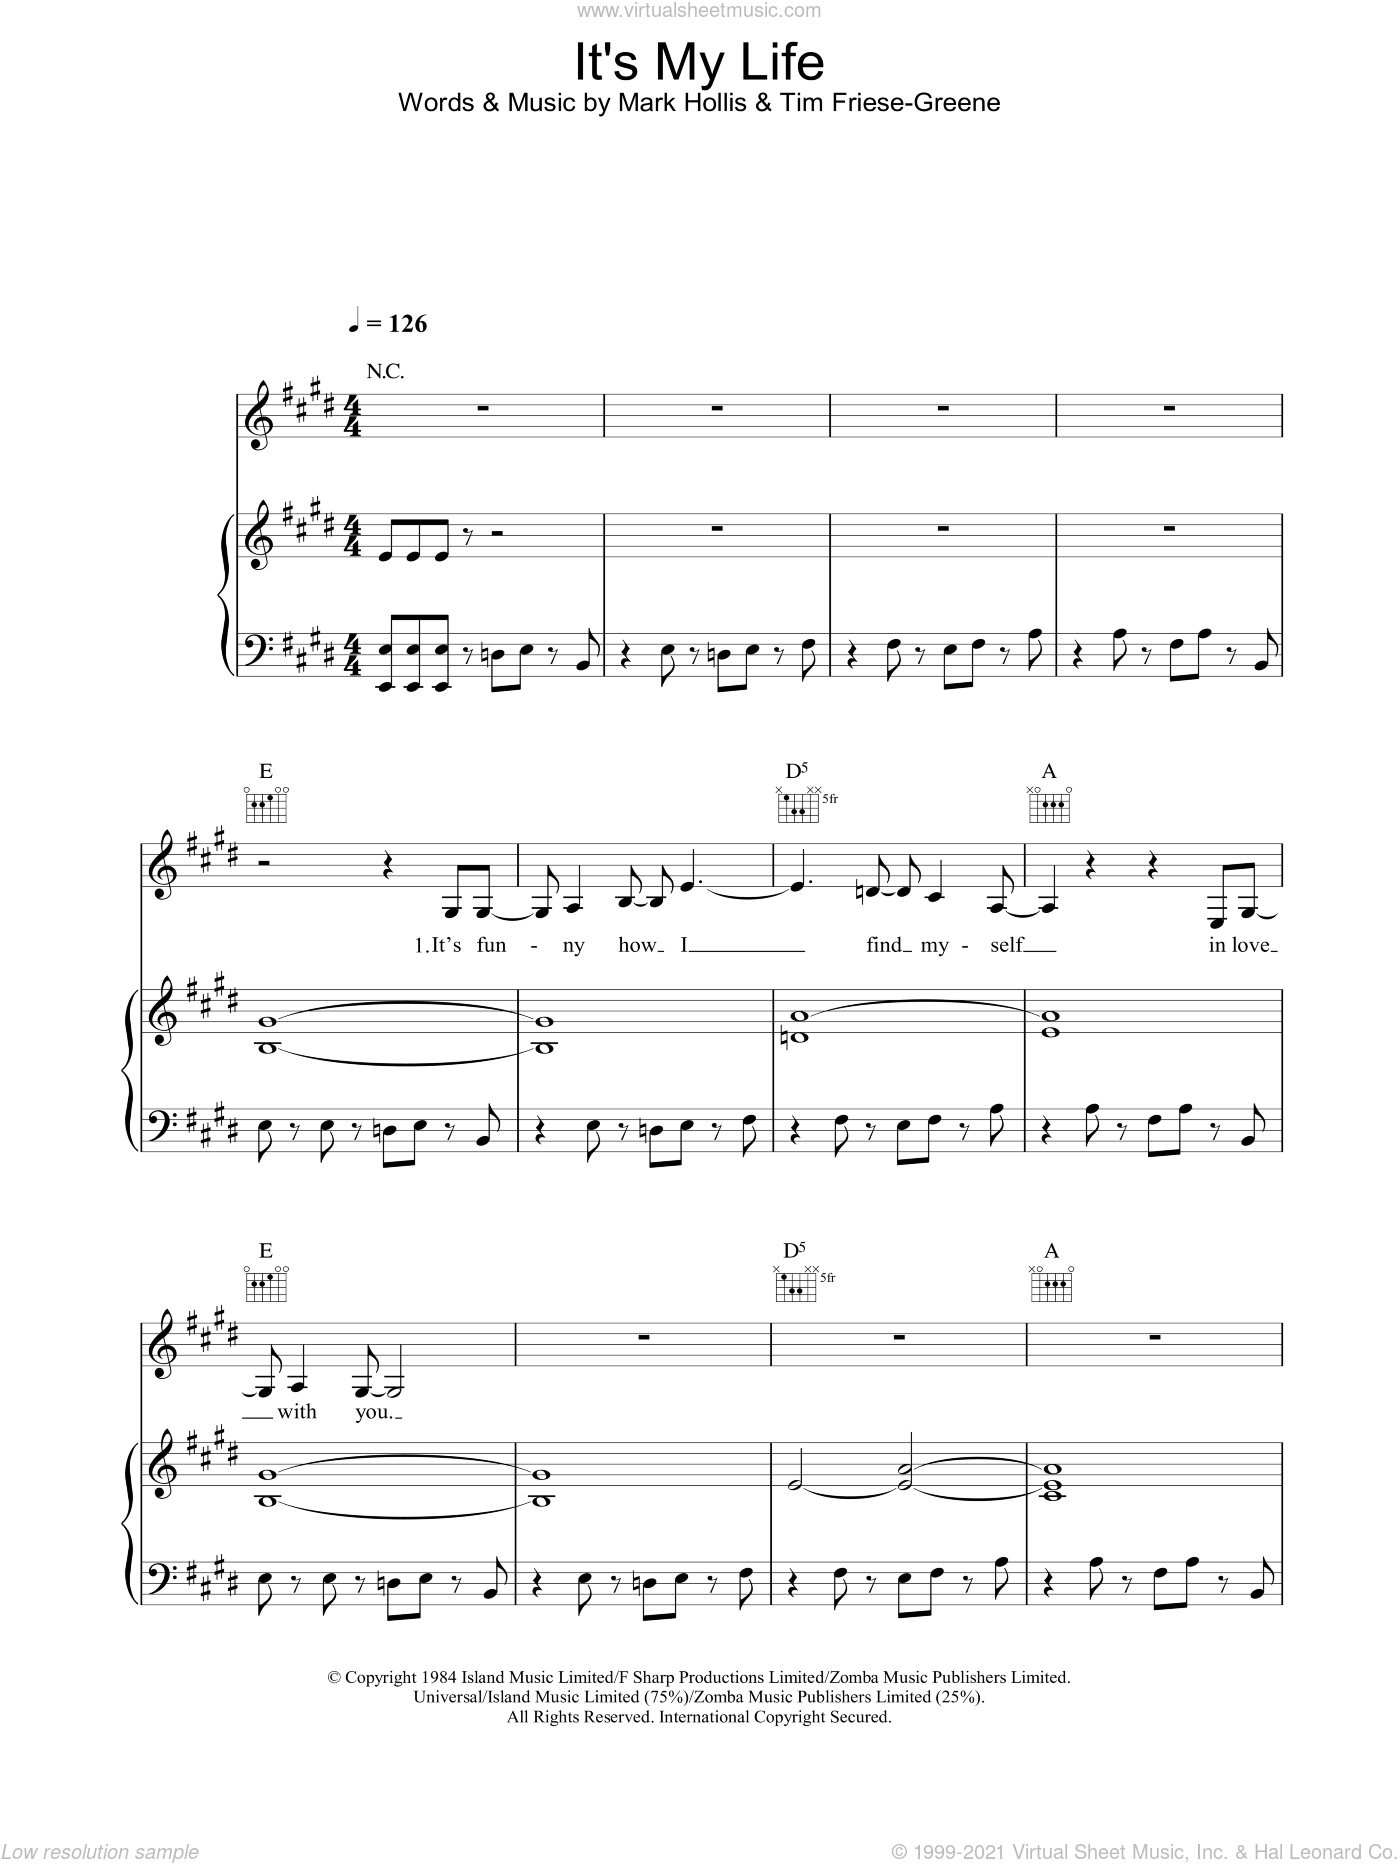 It's My Life sheet music for voice, piano or guitar by No Doubt. Score Image Preview.